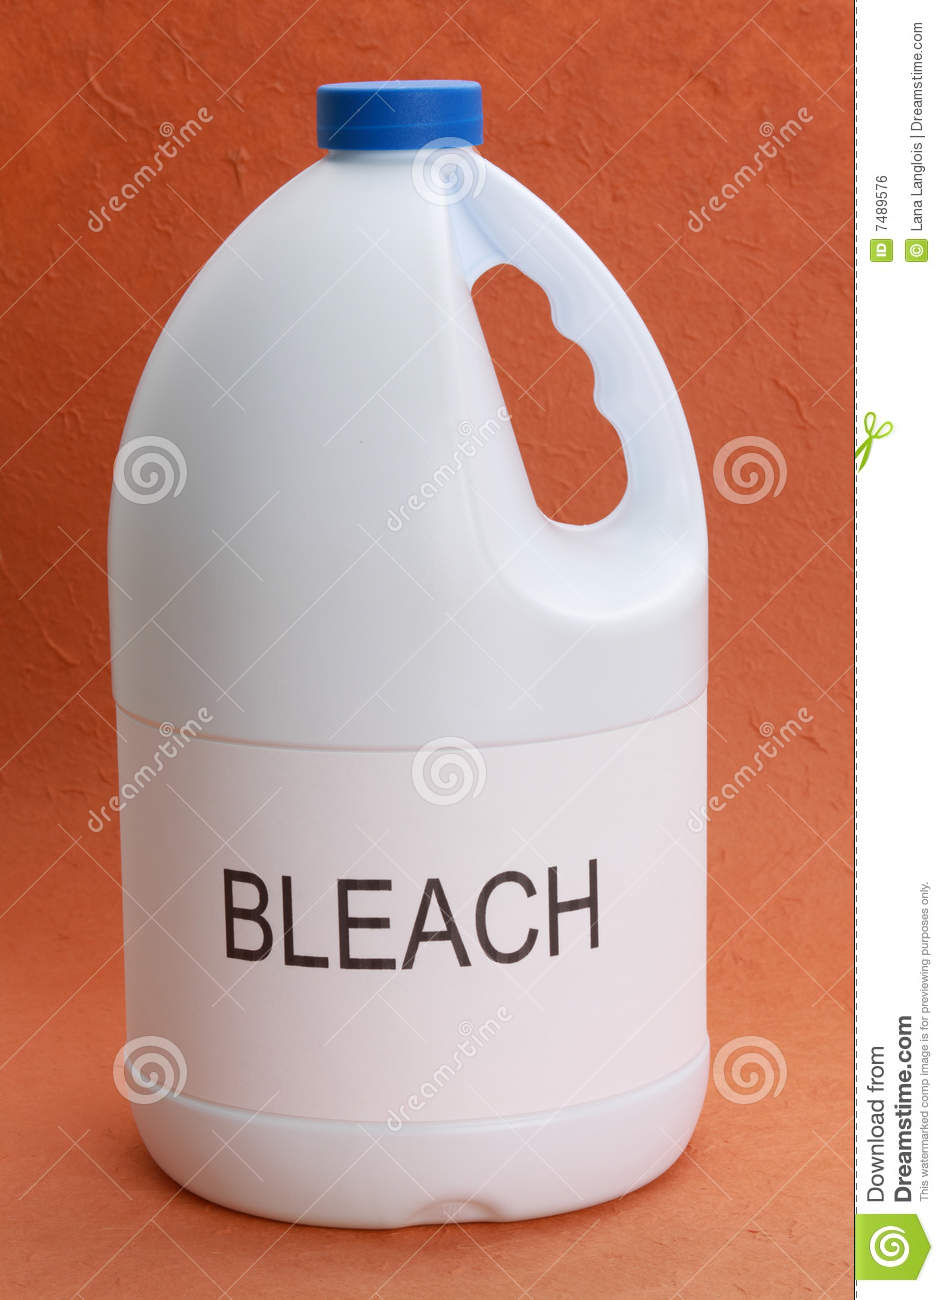 Clean up cat pee with bleach